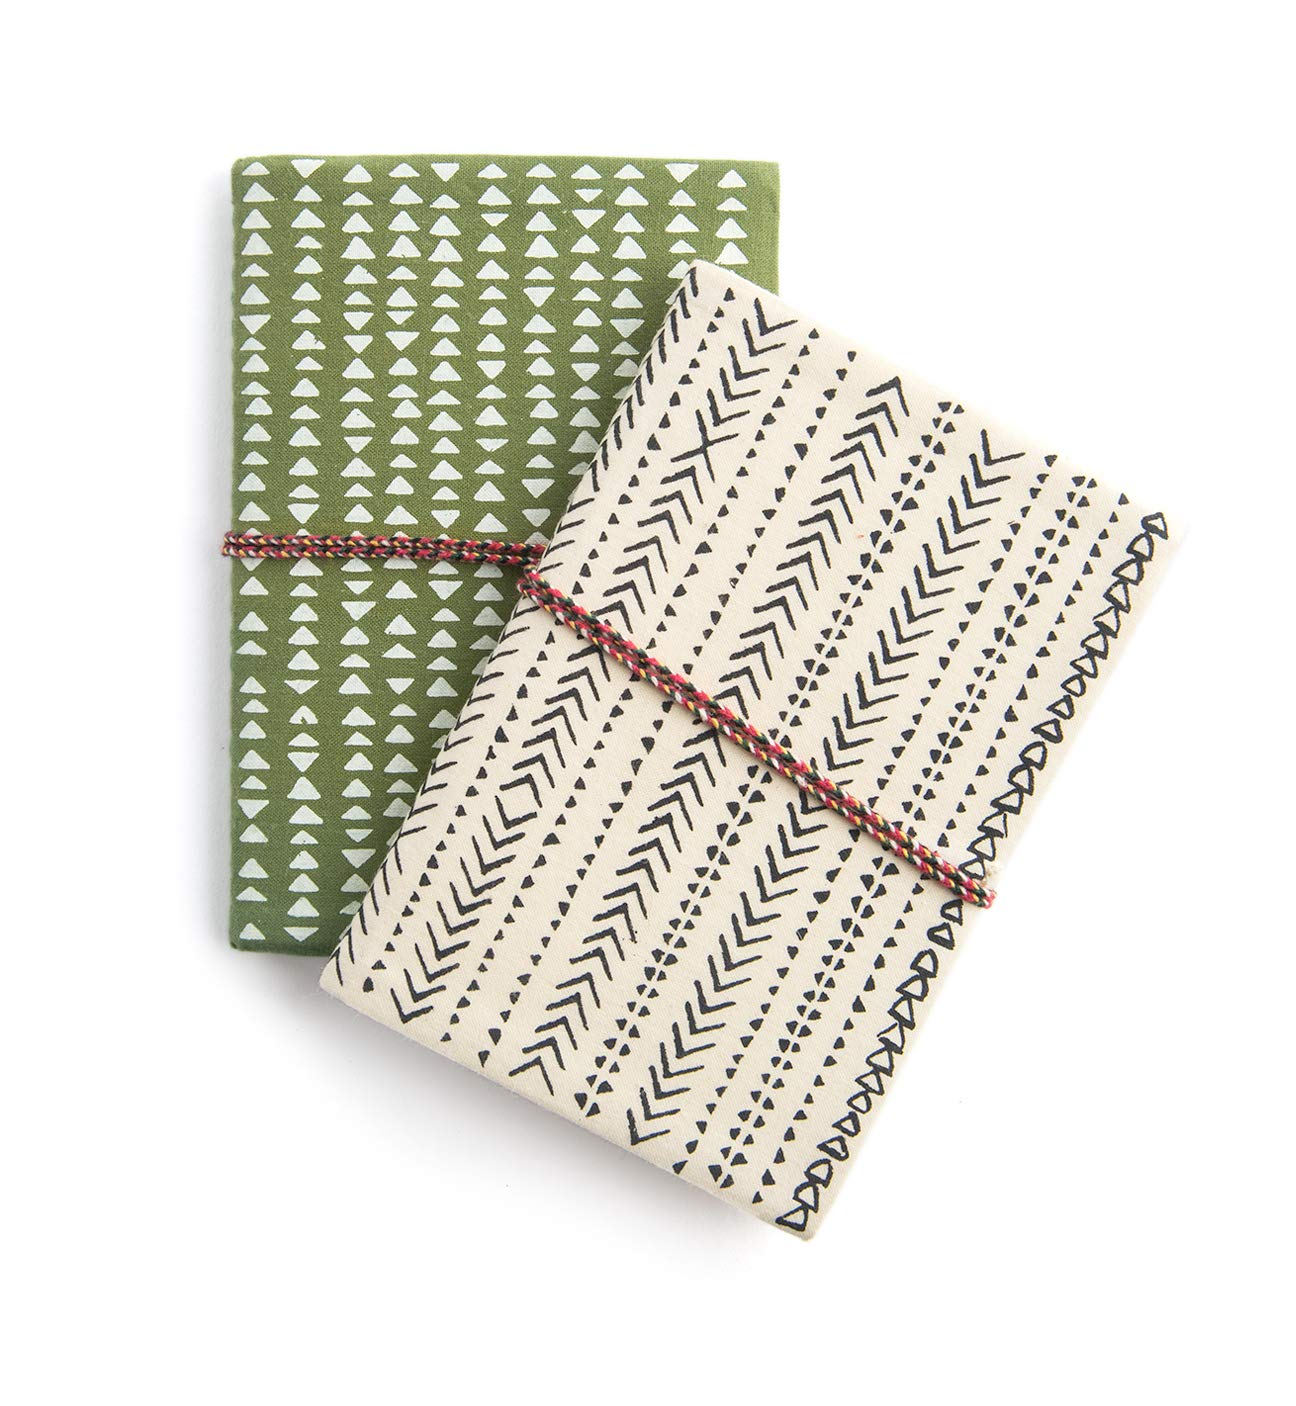 """Printfresh Softcover Fabric Notebooks, Small (4"""" x 6"""") Set of 2, Lined and Blank Writing and Drawing Journals with Braided Wraps, 80 Pages Each, Dash & Geometry - Green/Cream"""